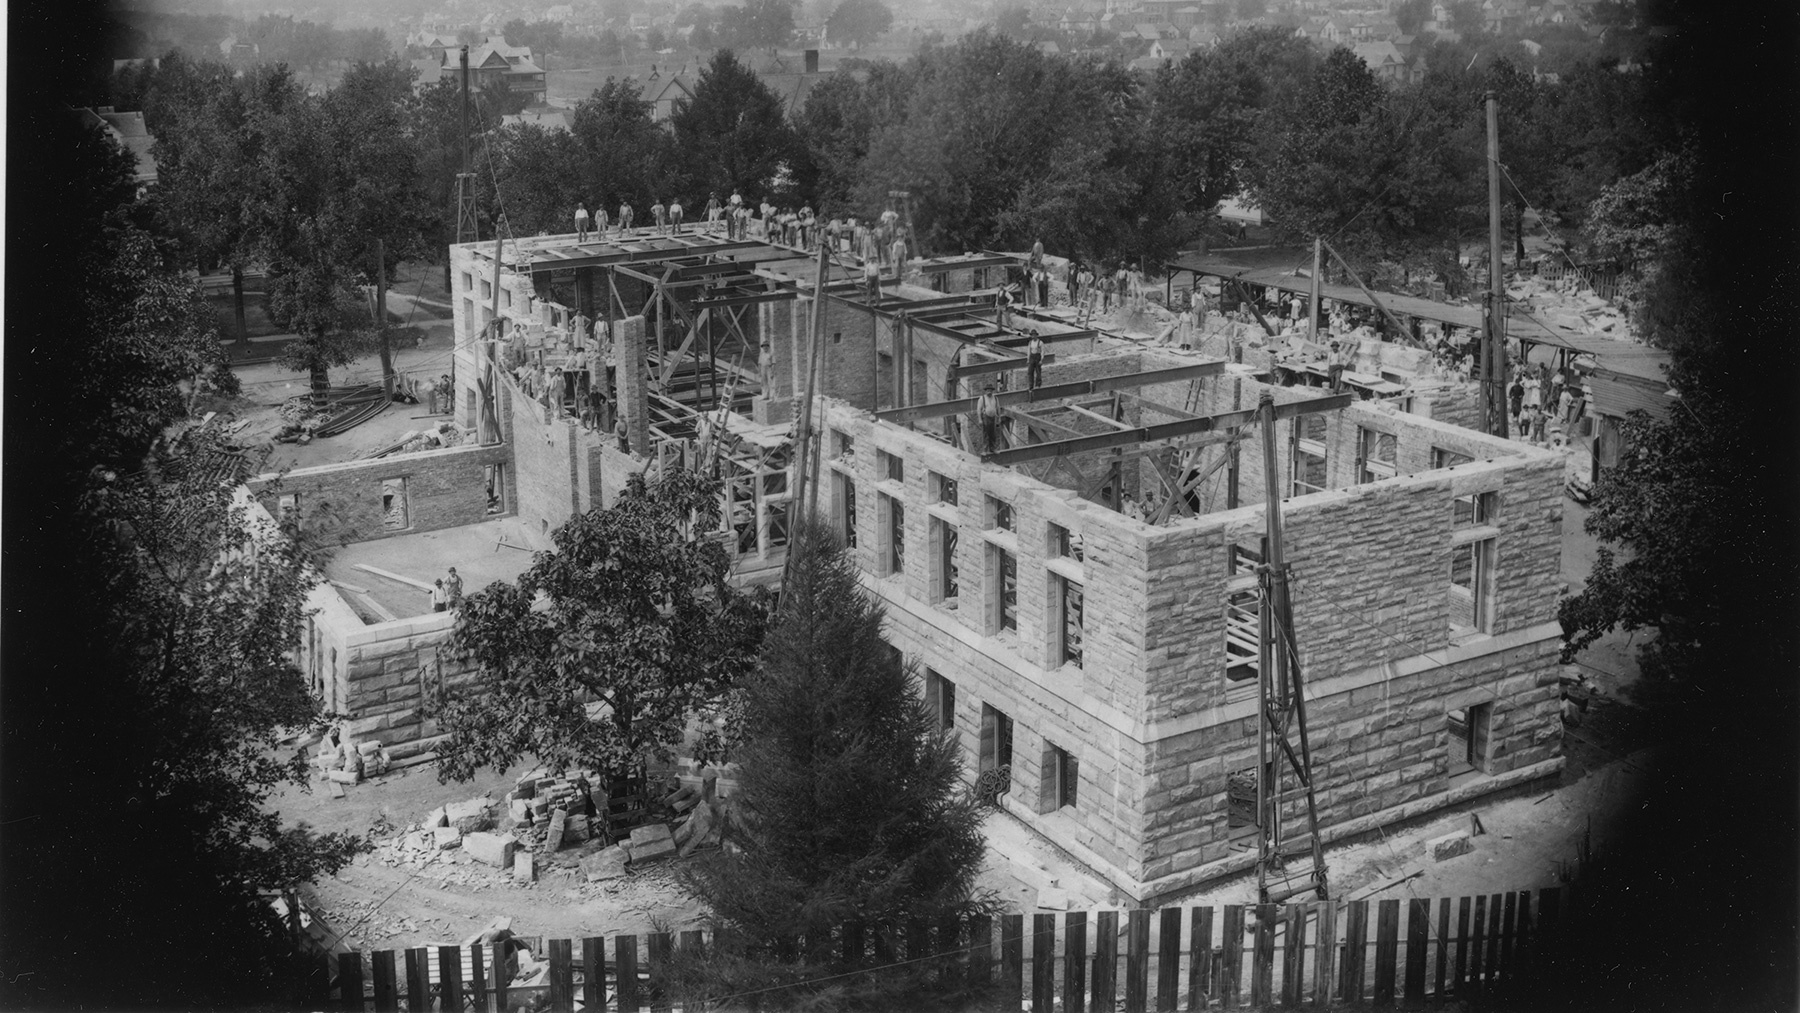 Altgeld Hall under construction. Photo courtesy of University of Illinois archives